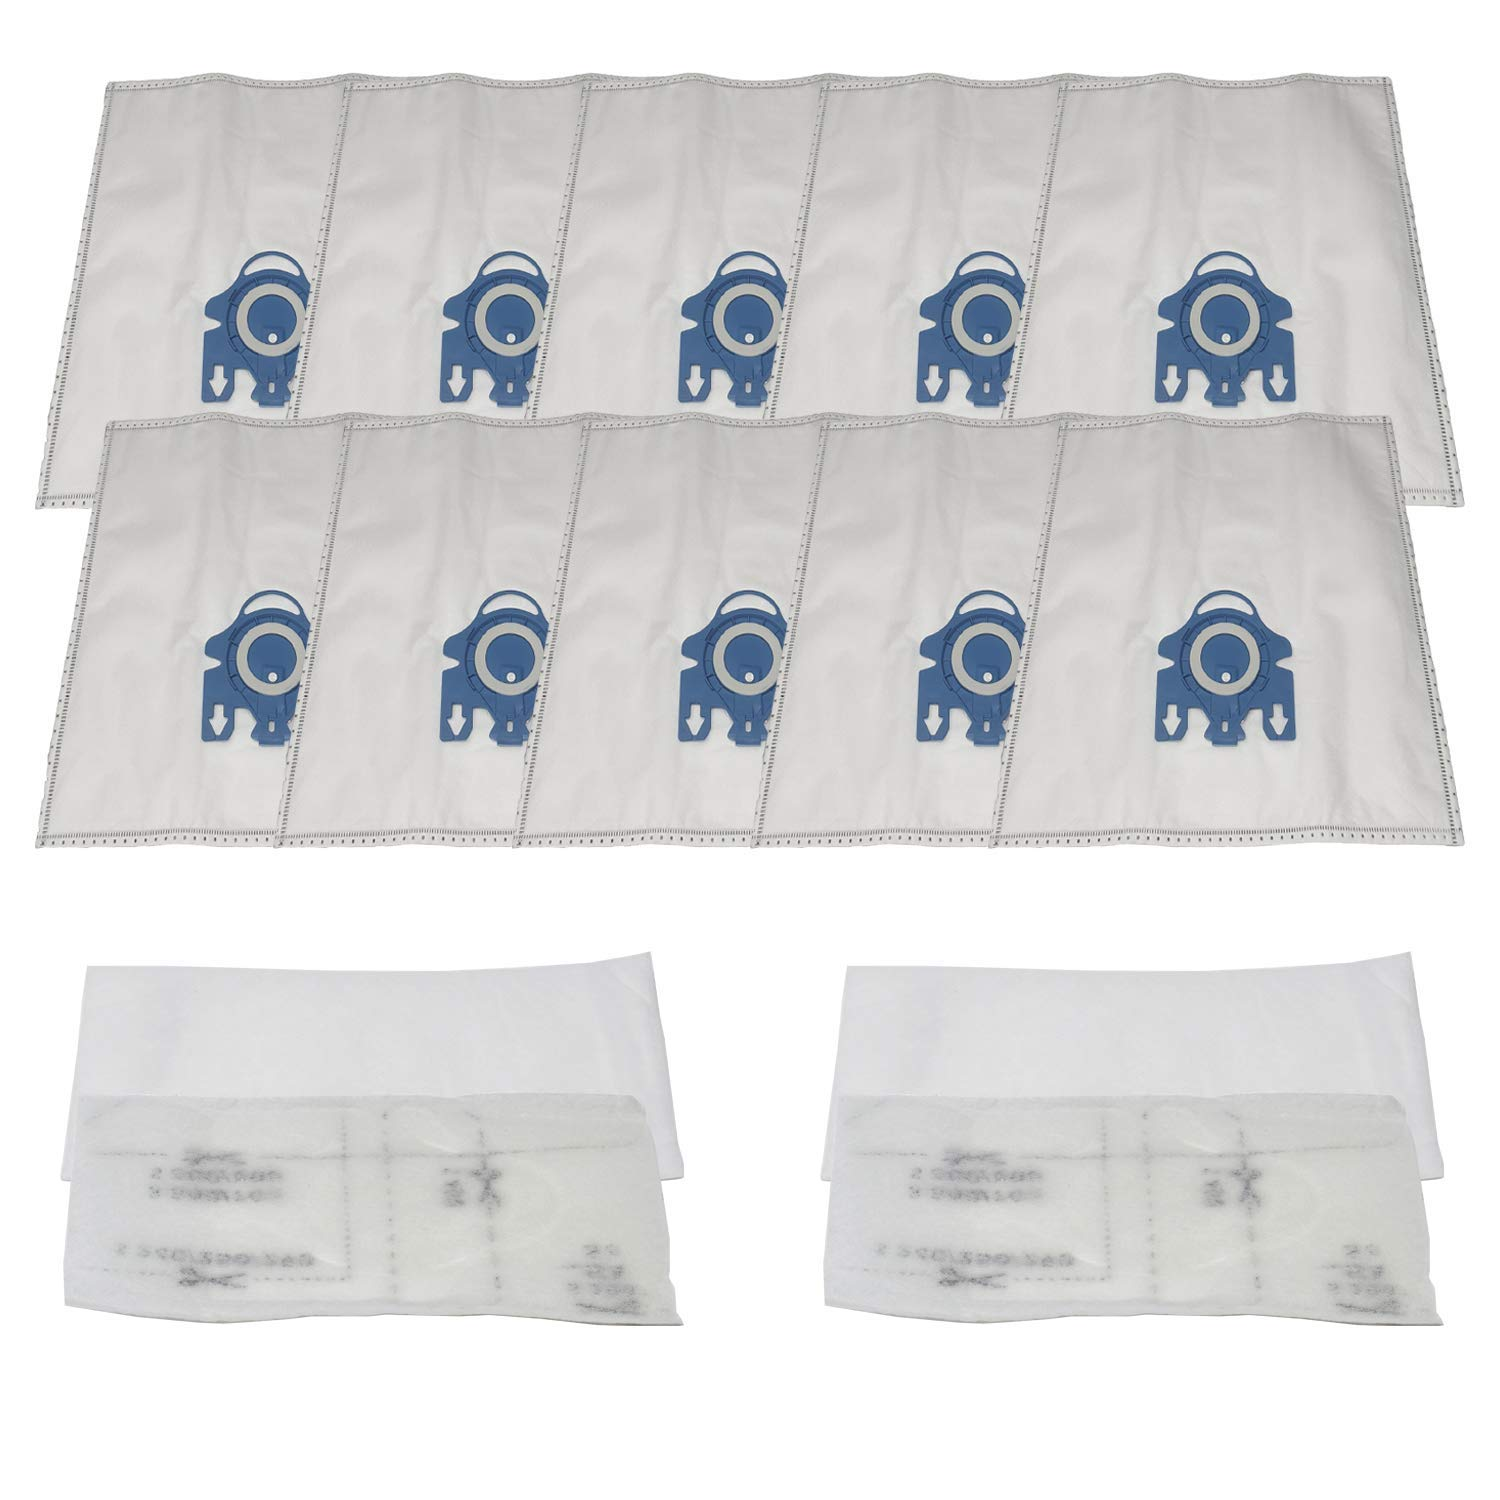 ZVac (10 Bags + 4 Filters) Compatible Vacuum Bags/Filters Replacement for Miele GN Airclean Vacuum bags Fits all Miele Vacuum Cleaners using Miele GN Vacuum Bags or Filters